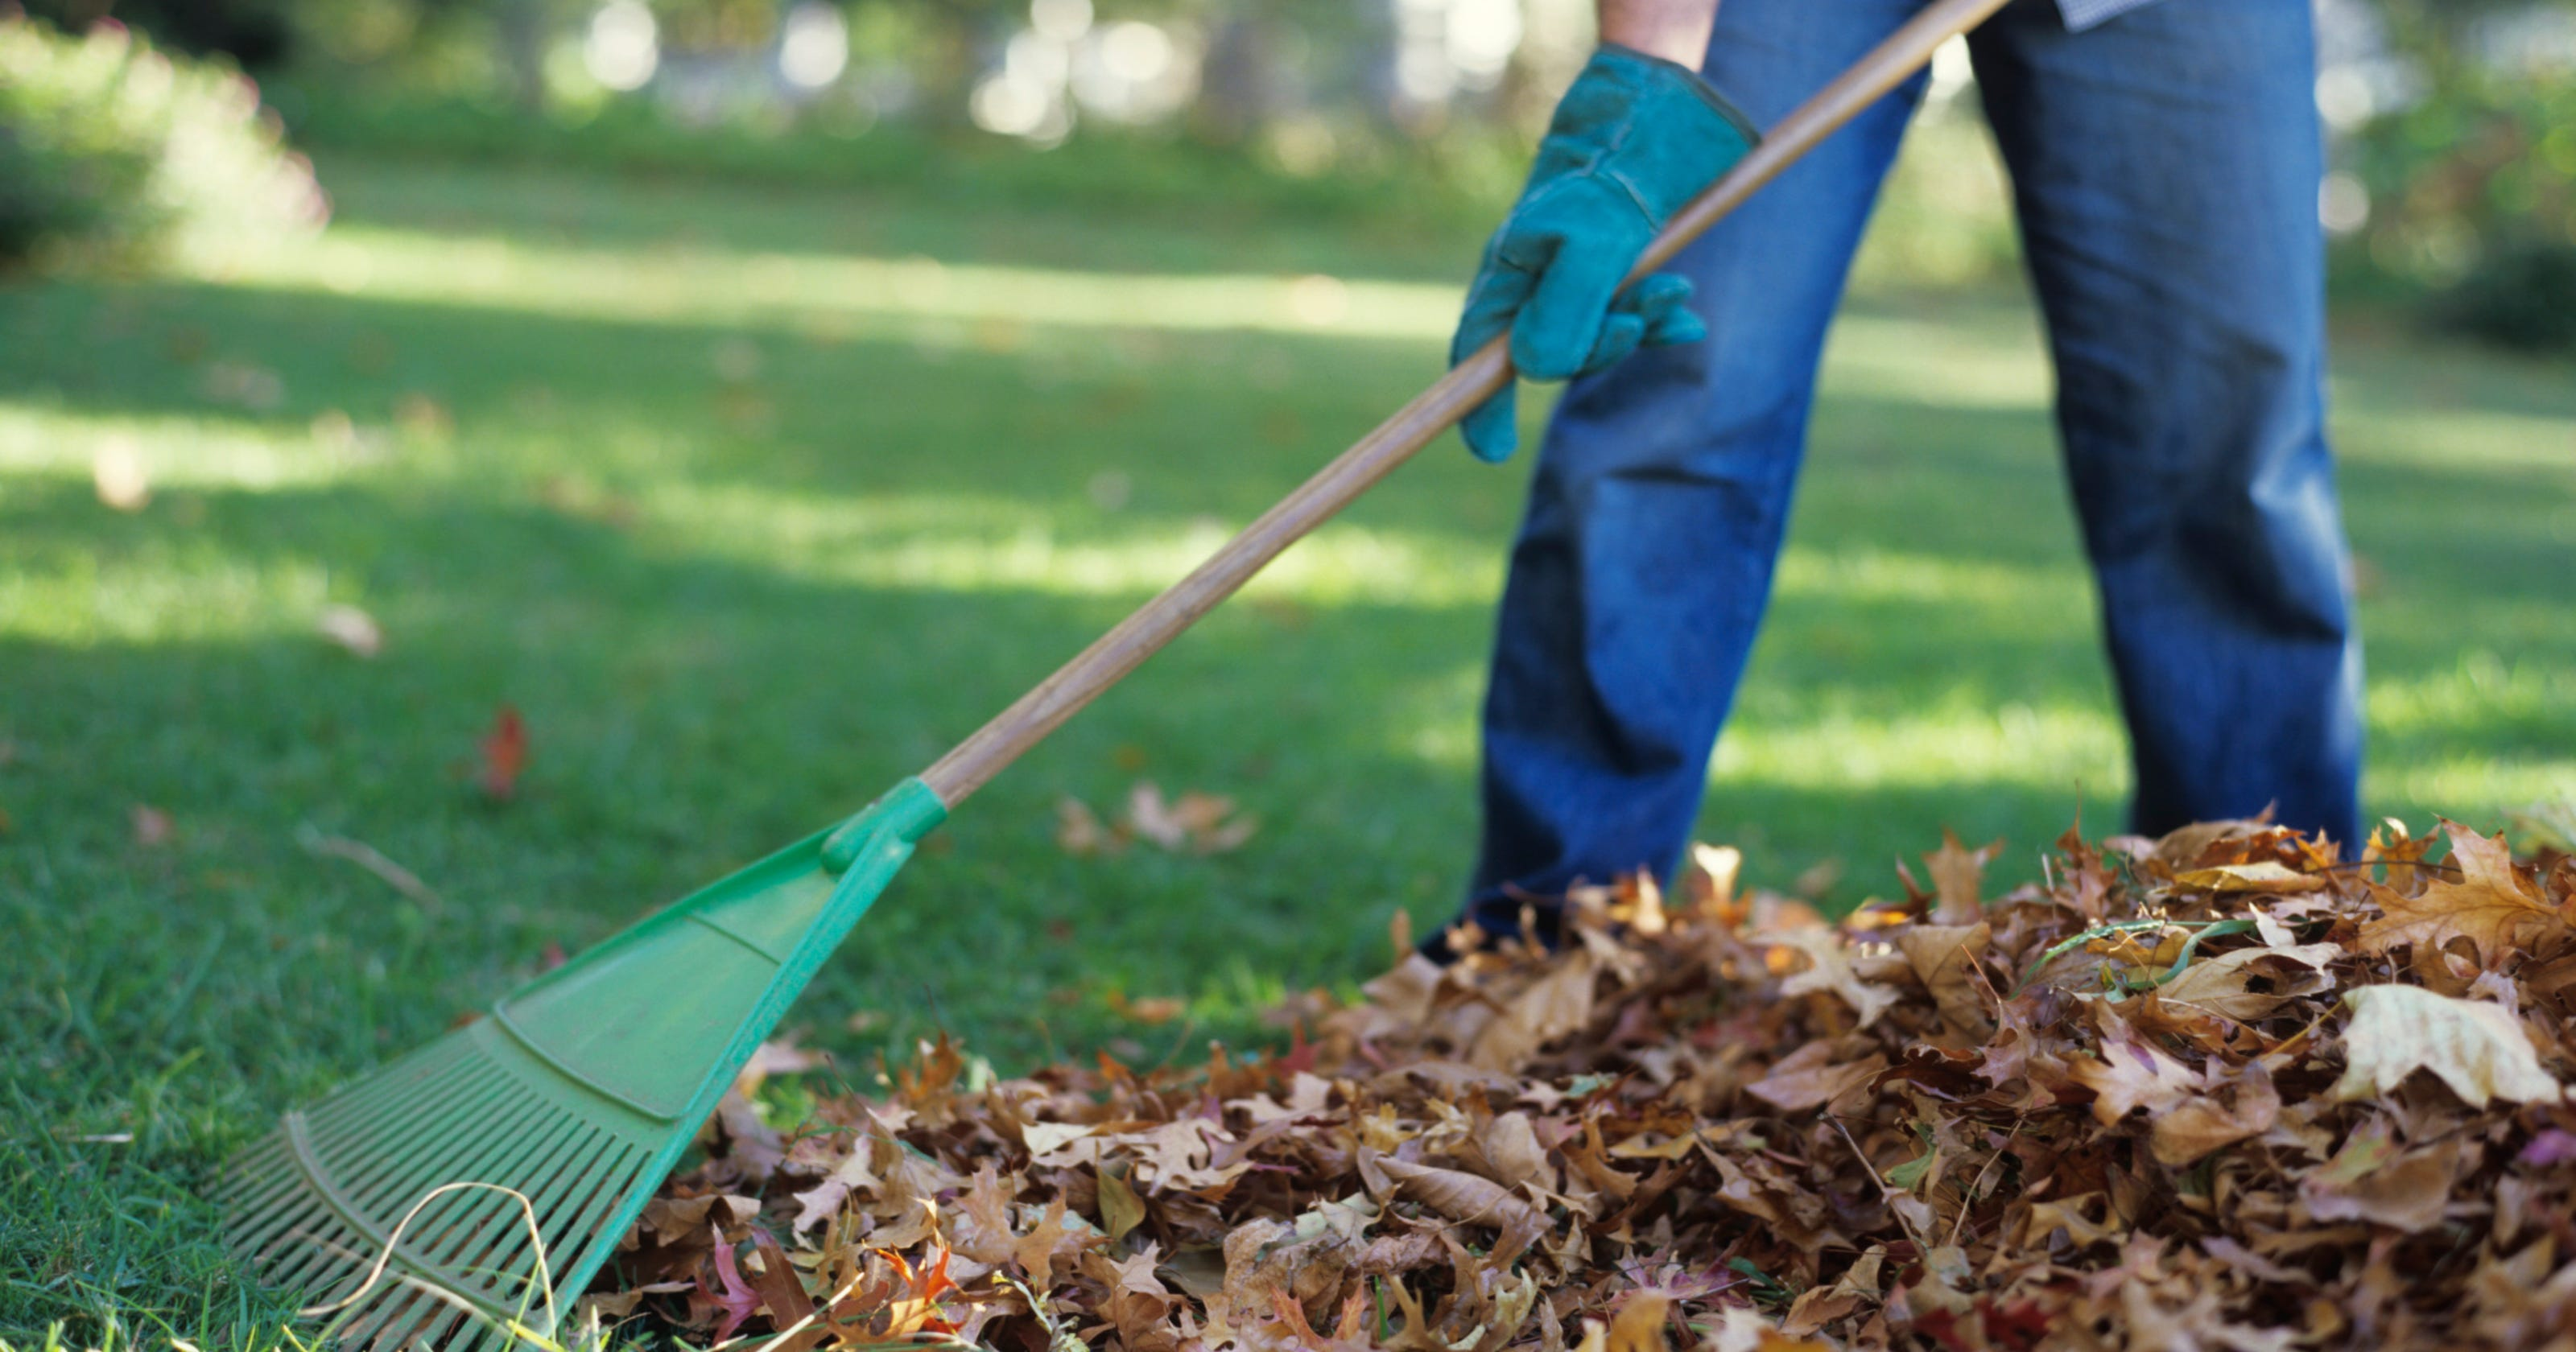 Louisville board bans plastic bags for yard waste